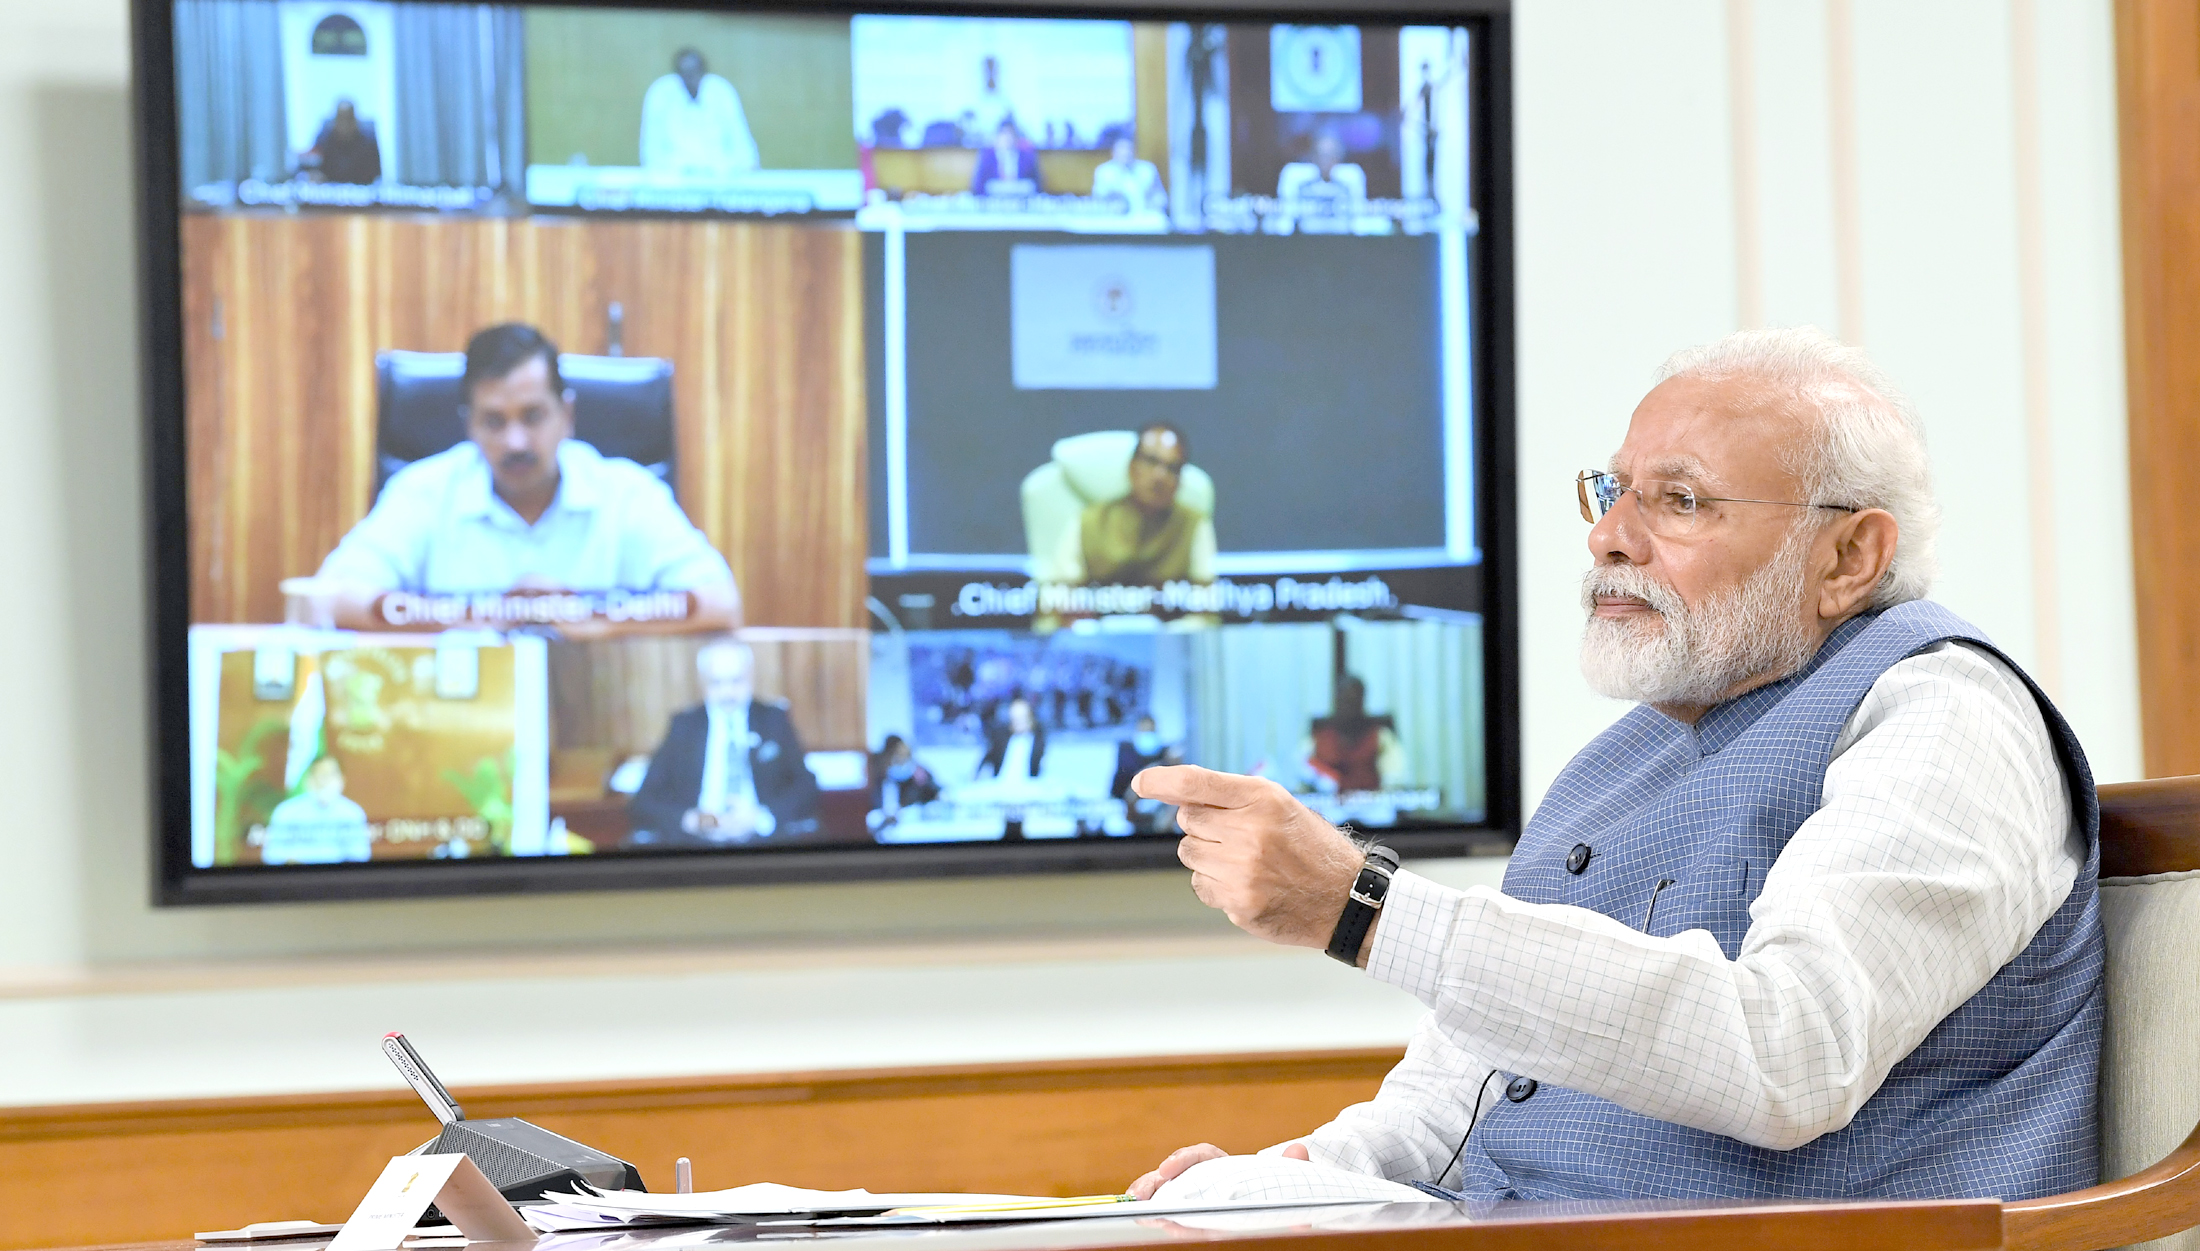 The Prime Minister, Shri Narendra Modi interacting with the Chief Ministers of States via video conferencing to discuss measures to combat COVID-19, in New Delhi on April 02, 2020.